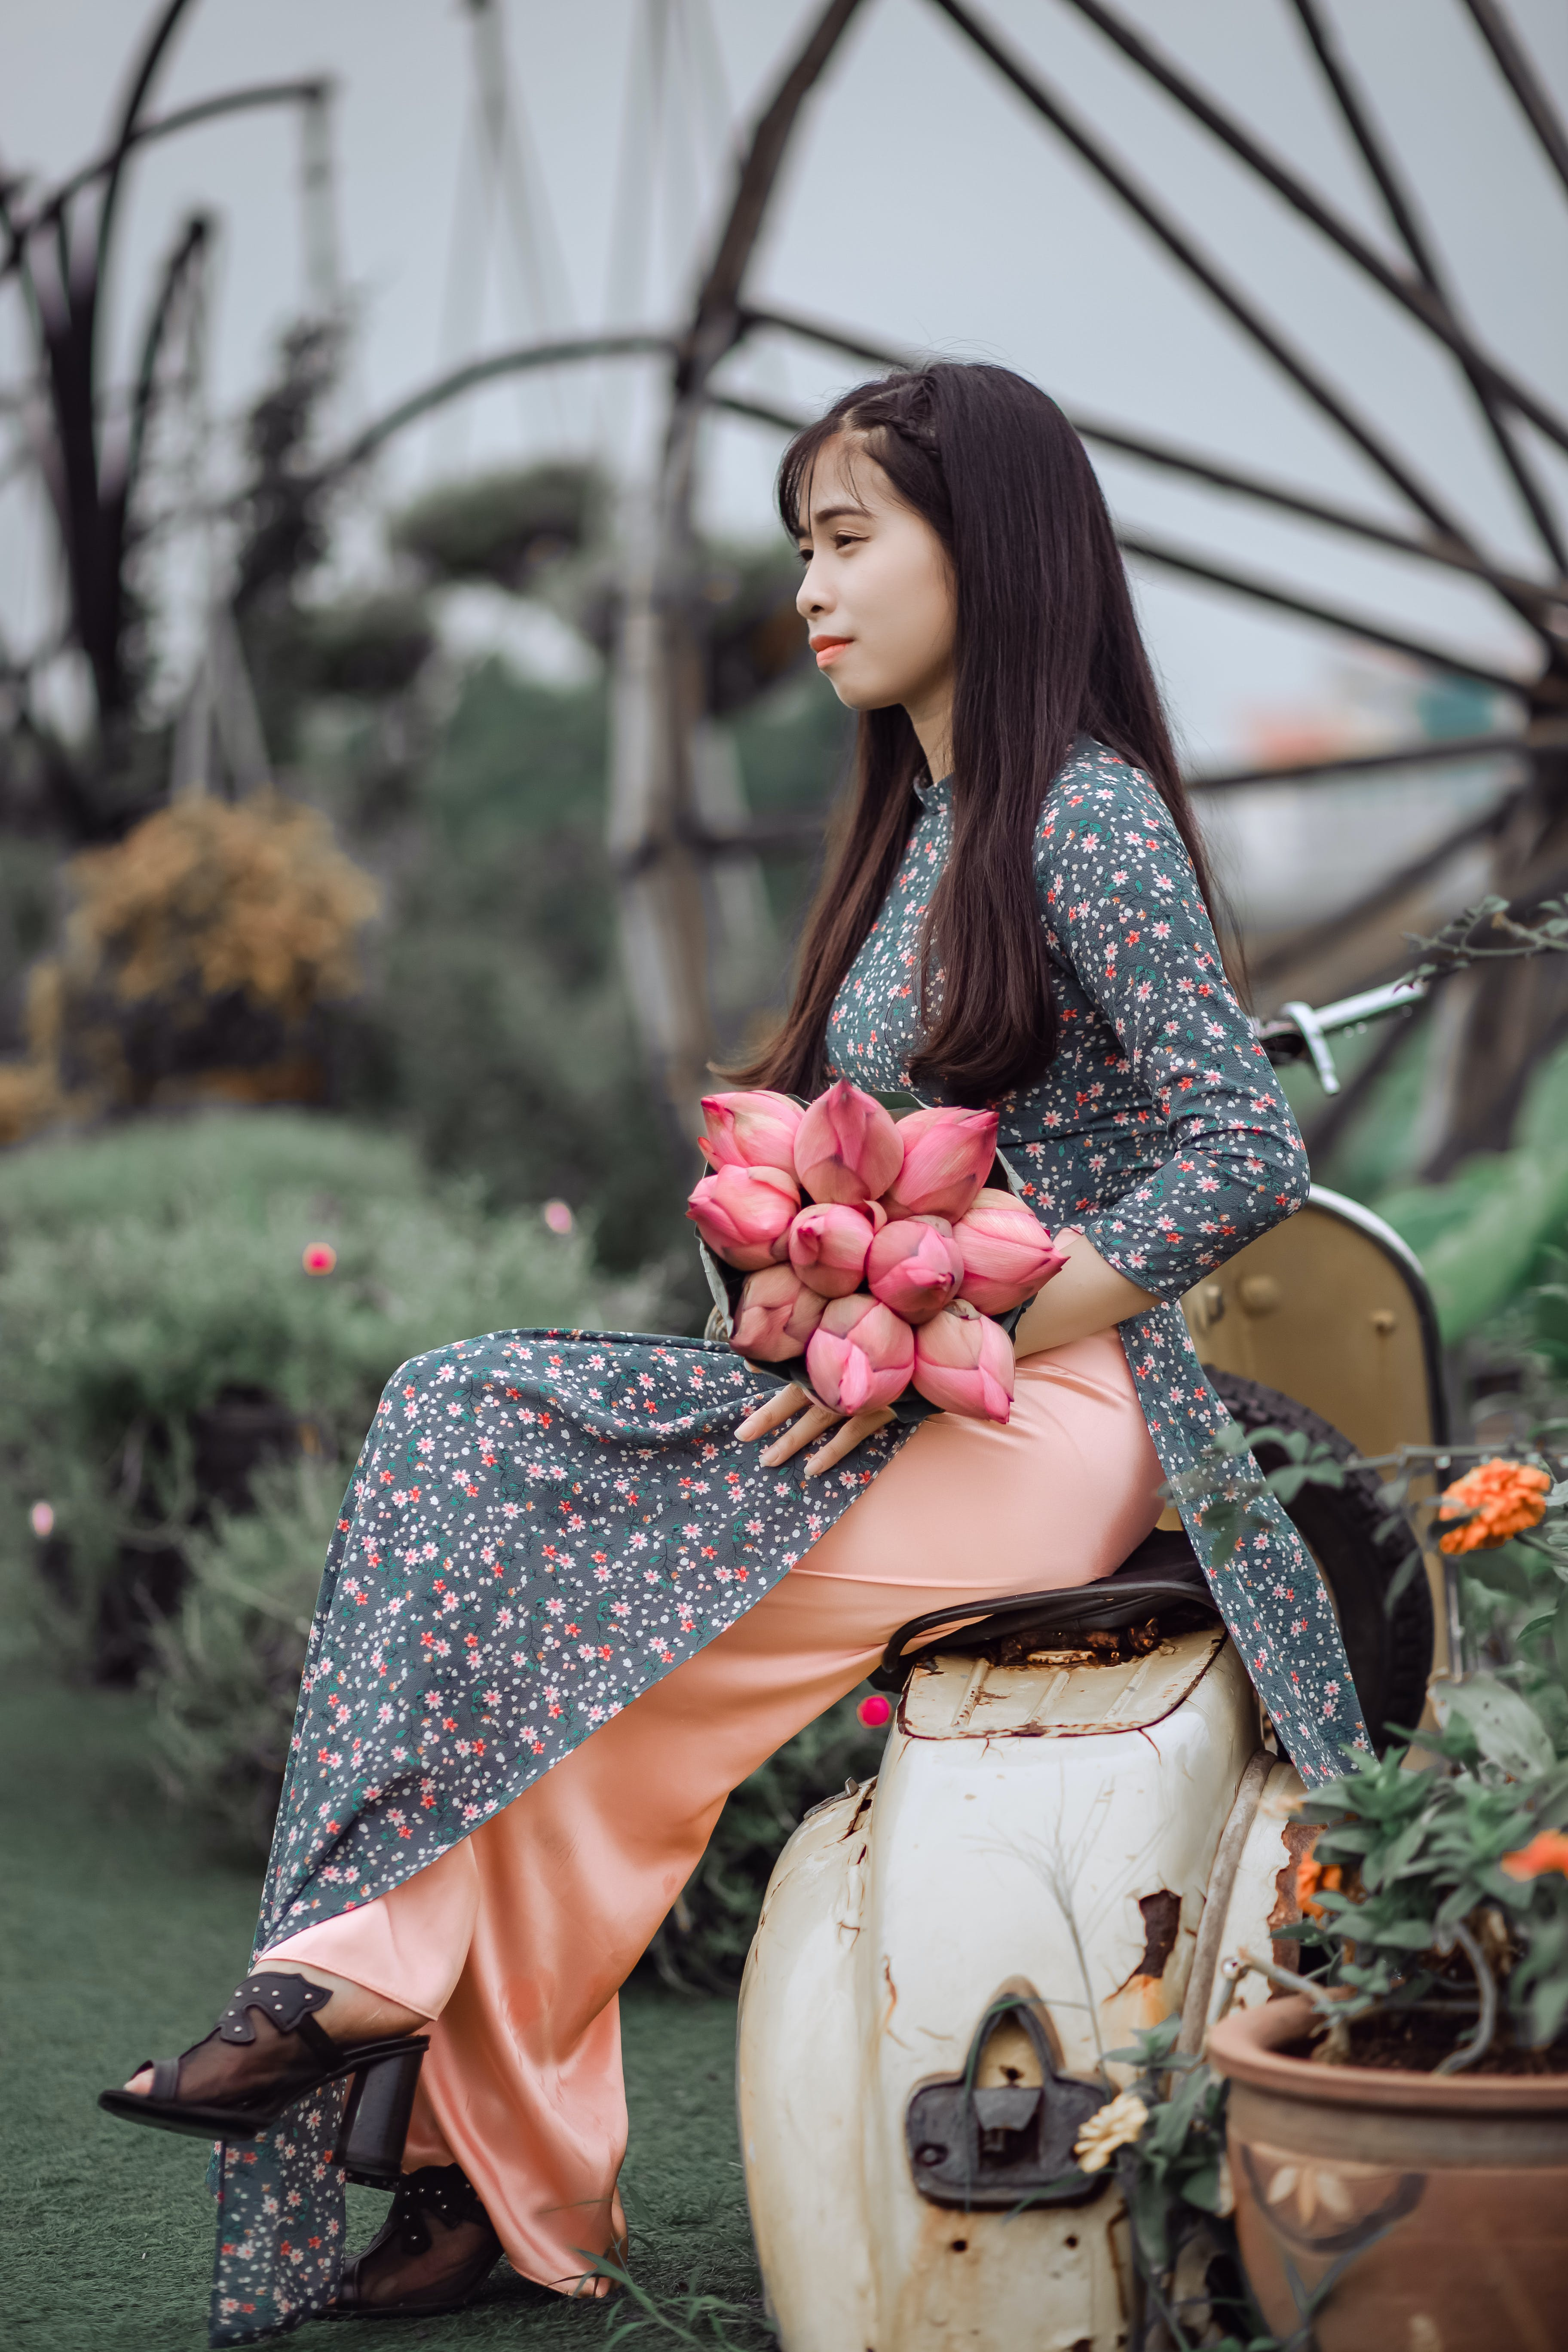 Woman Sitting on Motorcycle While Holding Banana Blossoms Bouquet